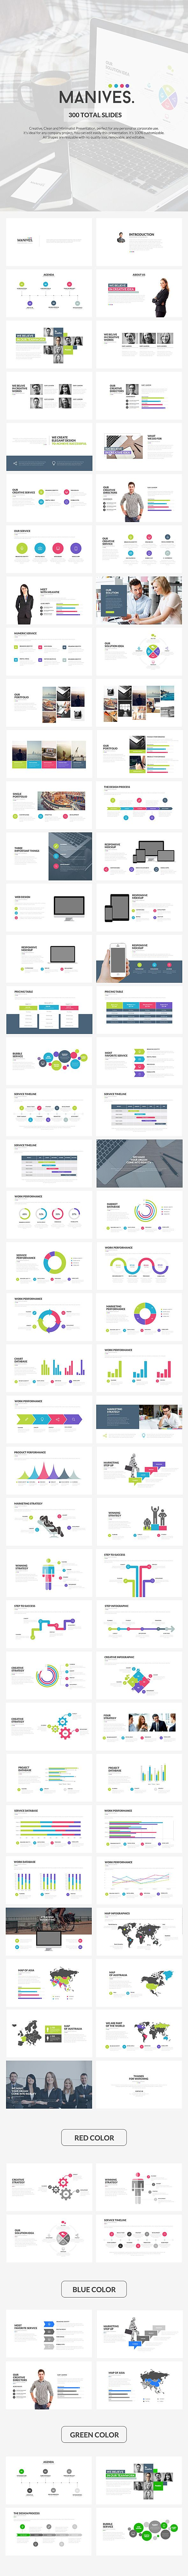 Manives Keynote Template #design #slides Download: http://graphicriver.net/item/manives-keynote-template/12435586?ref=ksioks